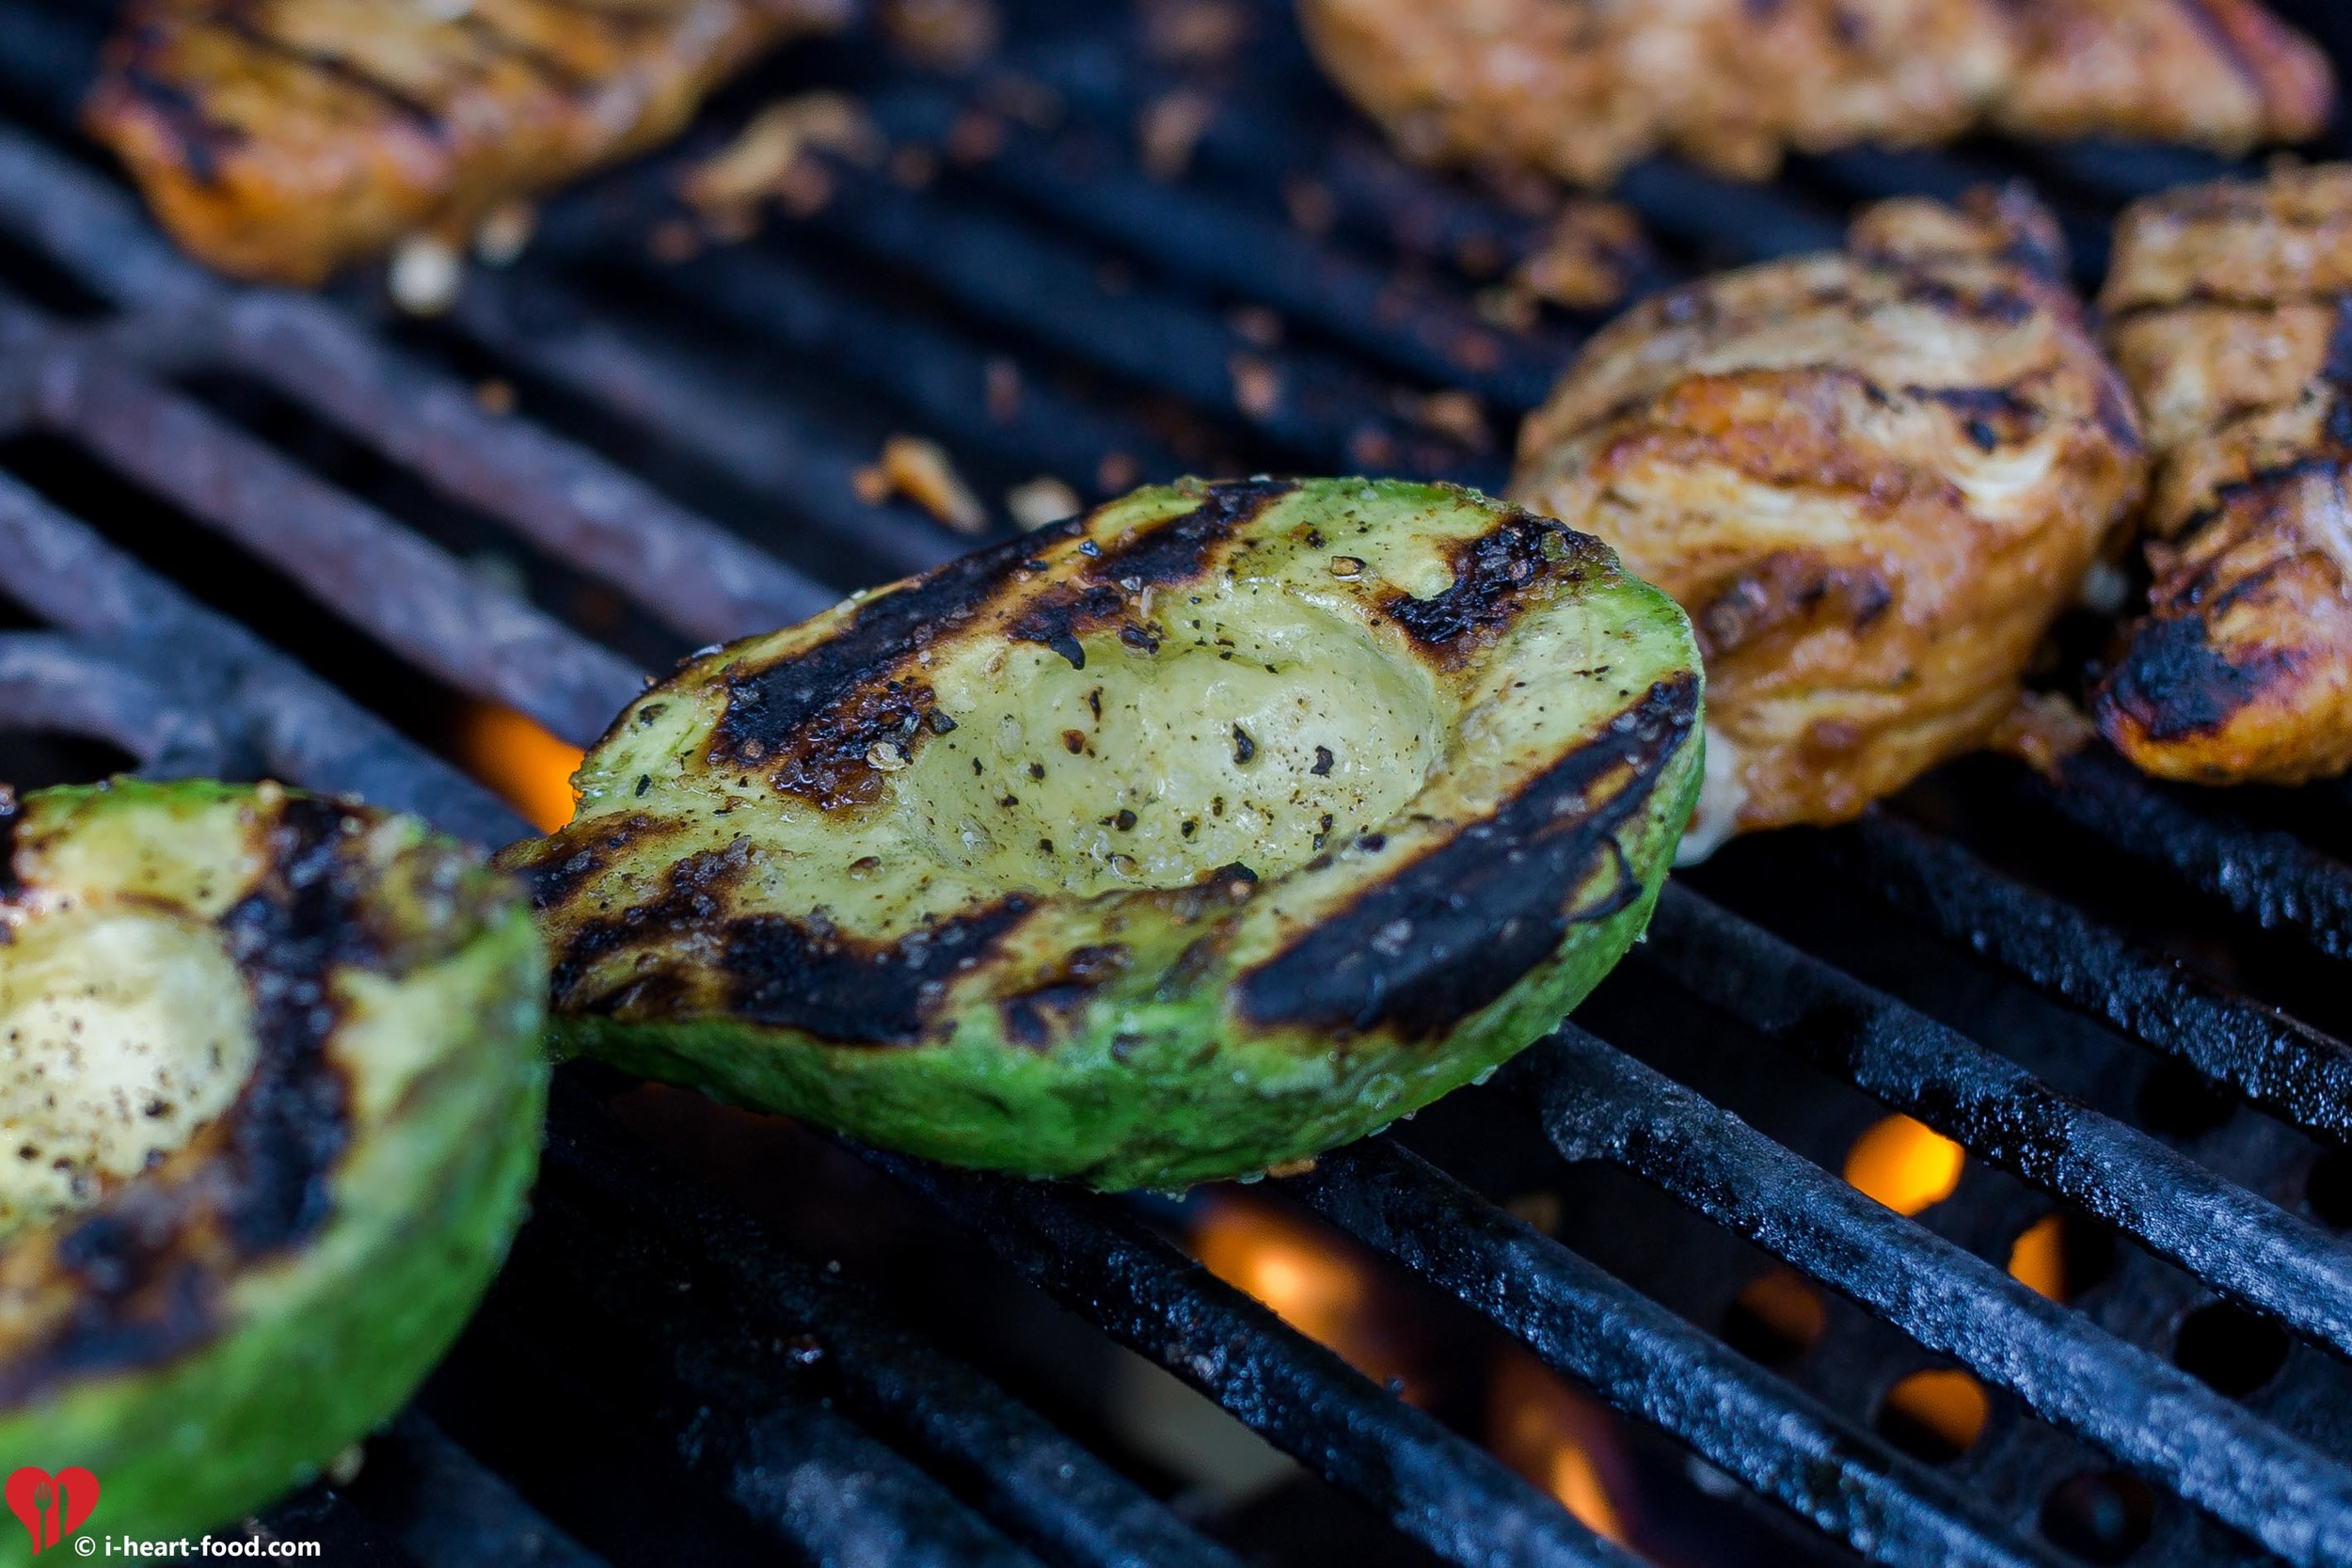 Avocado on the grill with some chicken breast.